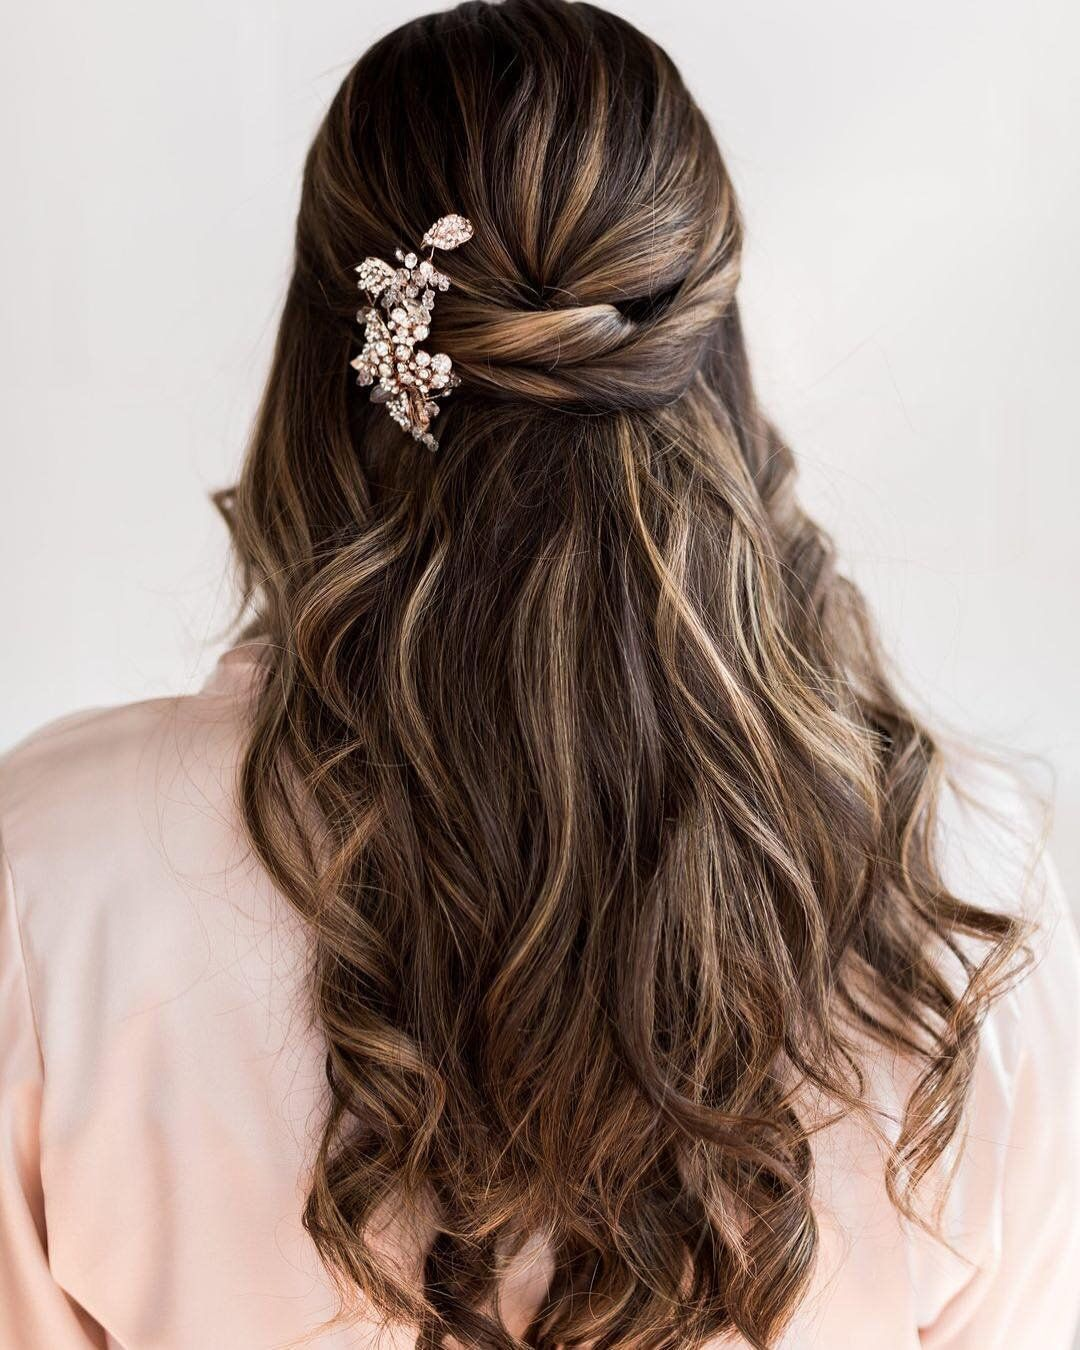 Braided Hairstyles 5 Ideas For Your Wedding Look: How About Soft Waves And A Twisted Half-up Hairstyle For